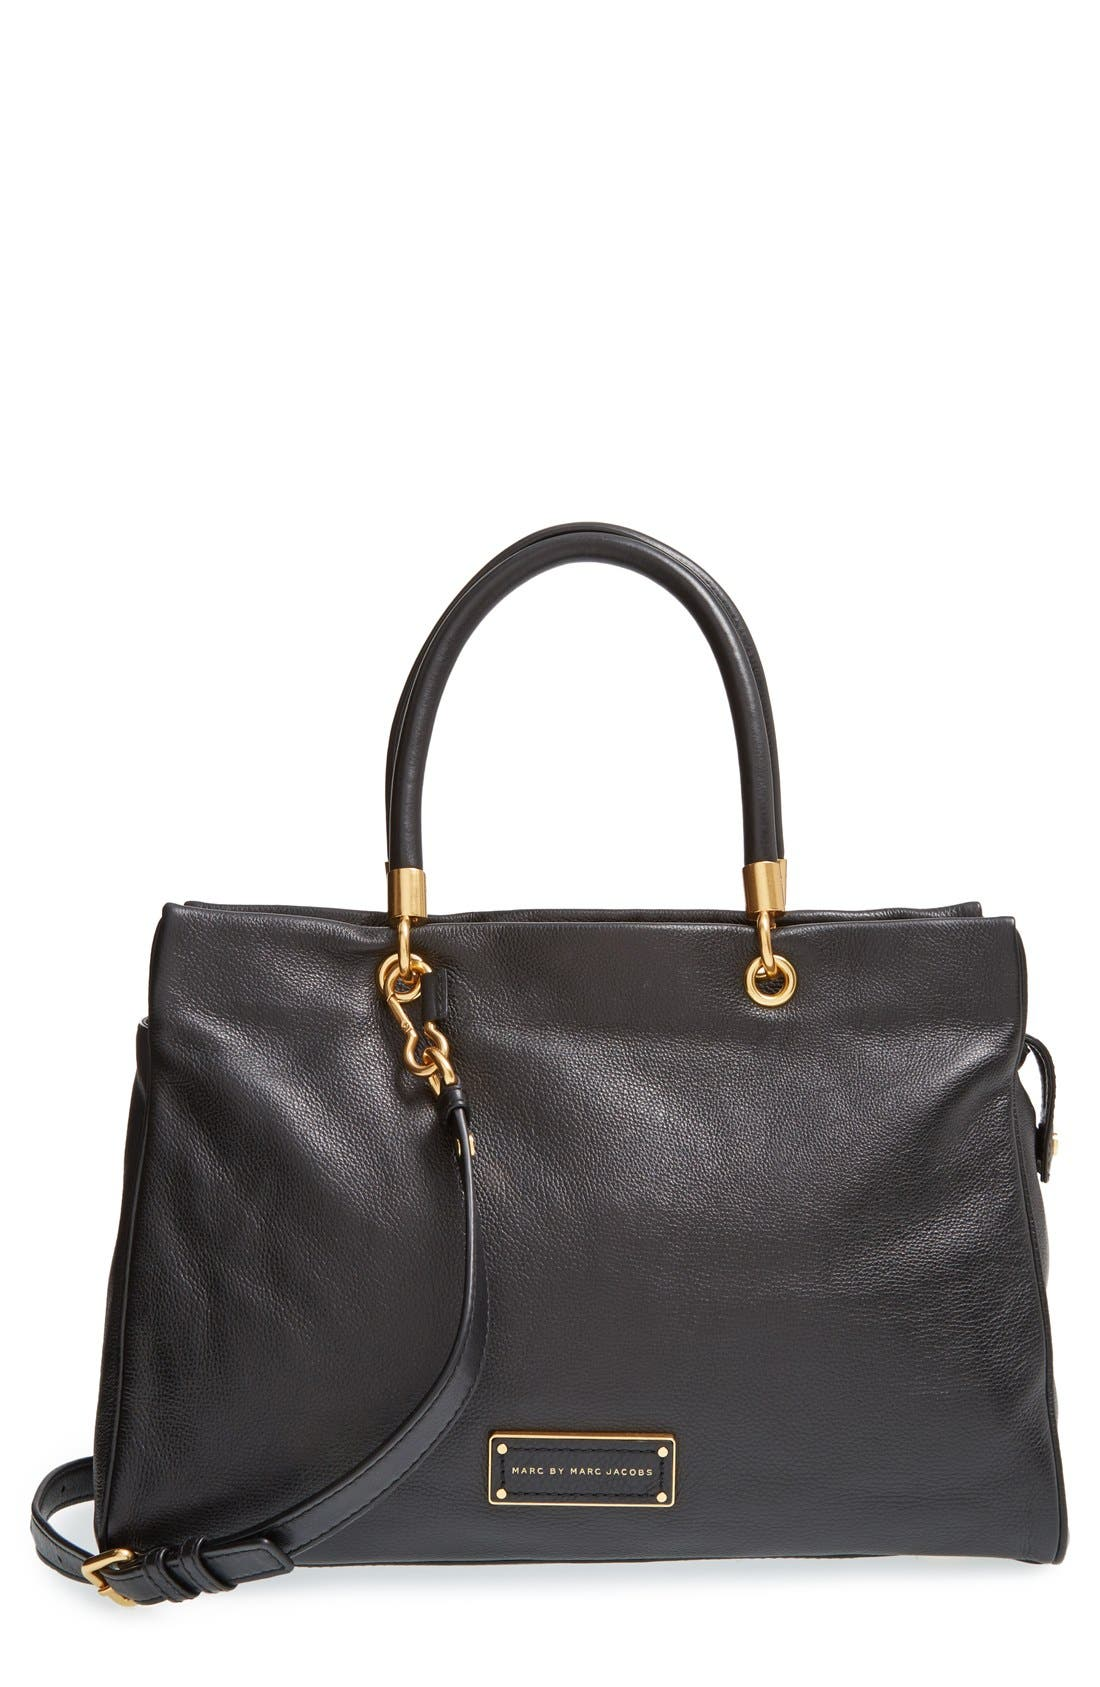 MARC JACOBS,                             MARC BY MARC JACOBS 'Too Hot to Handle' Tote,                             Main thumbnail 1, color,                             001